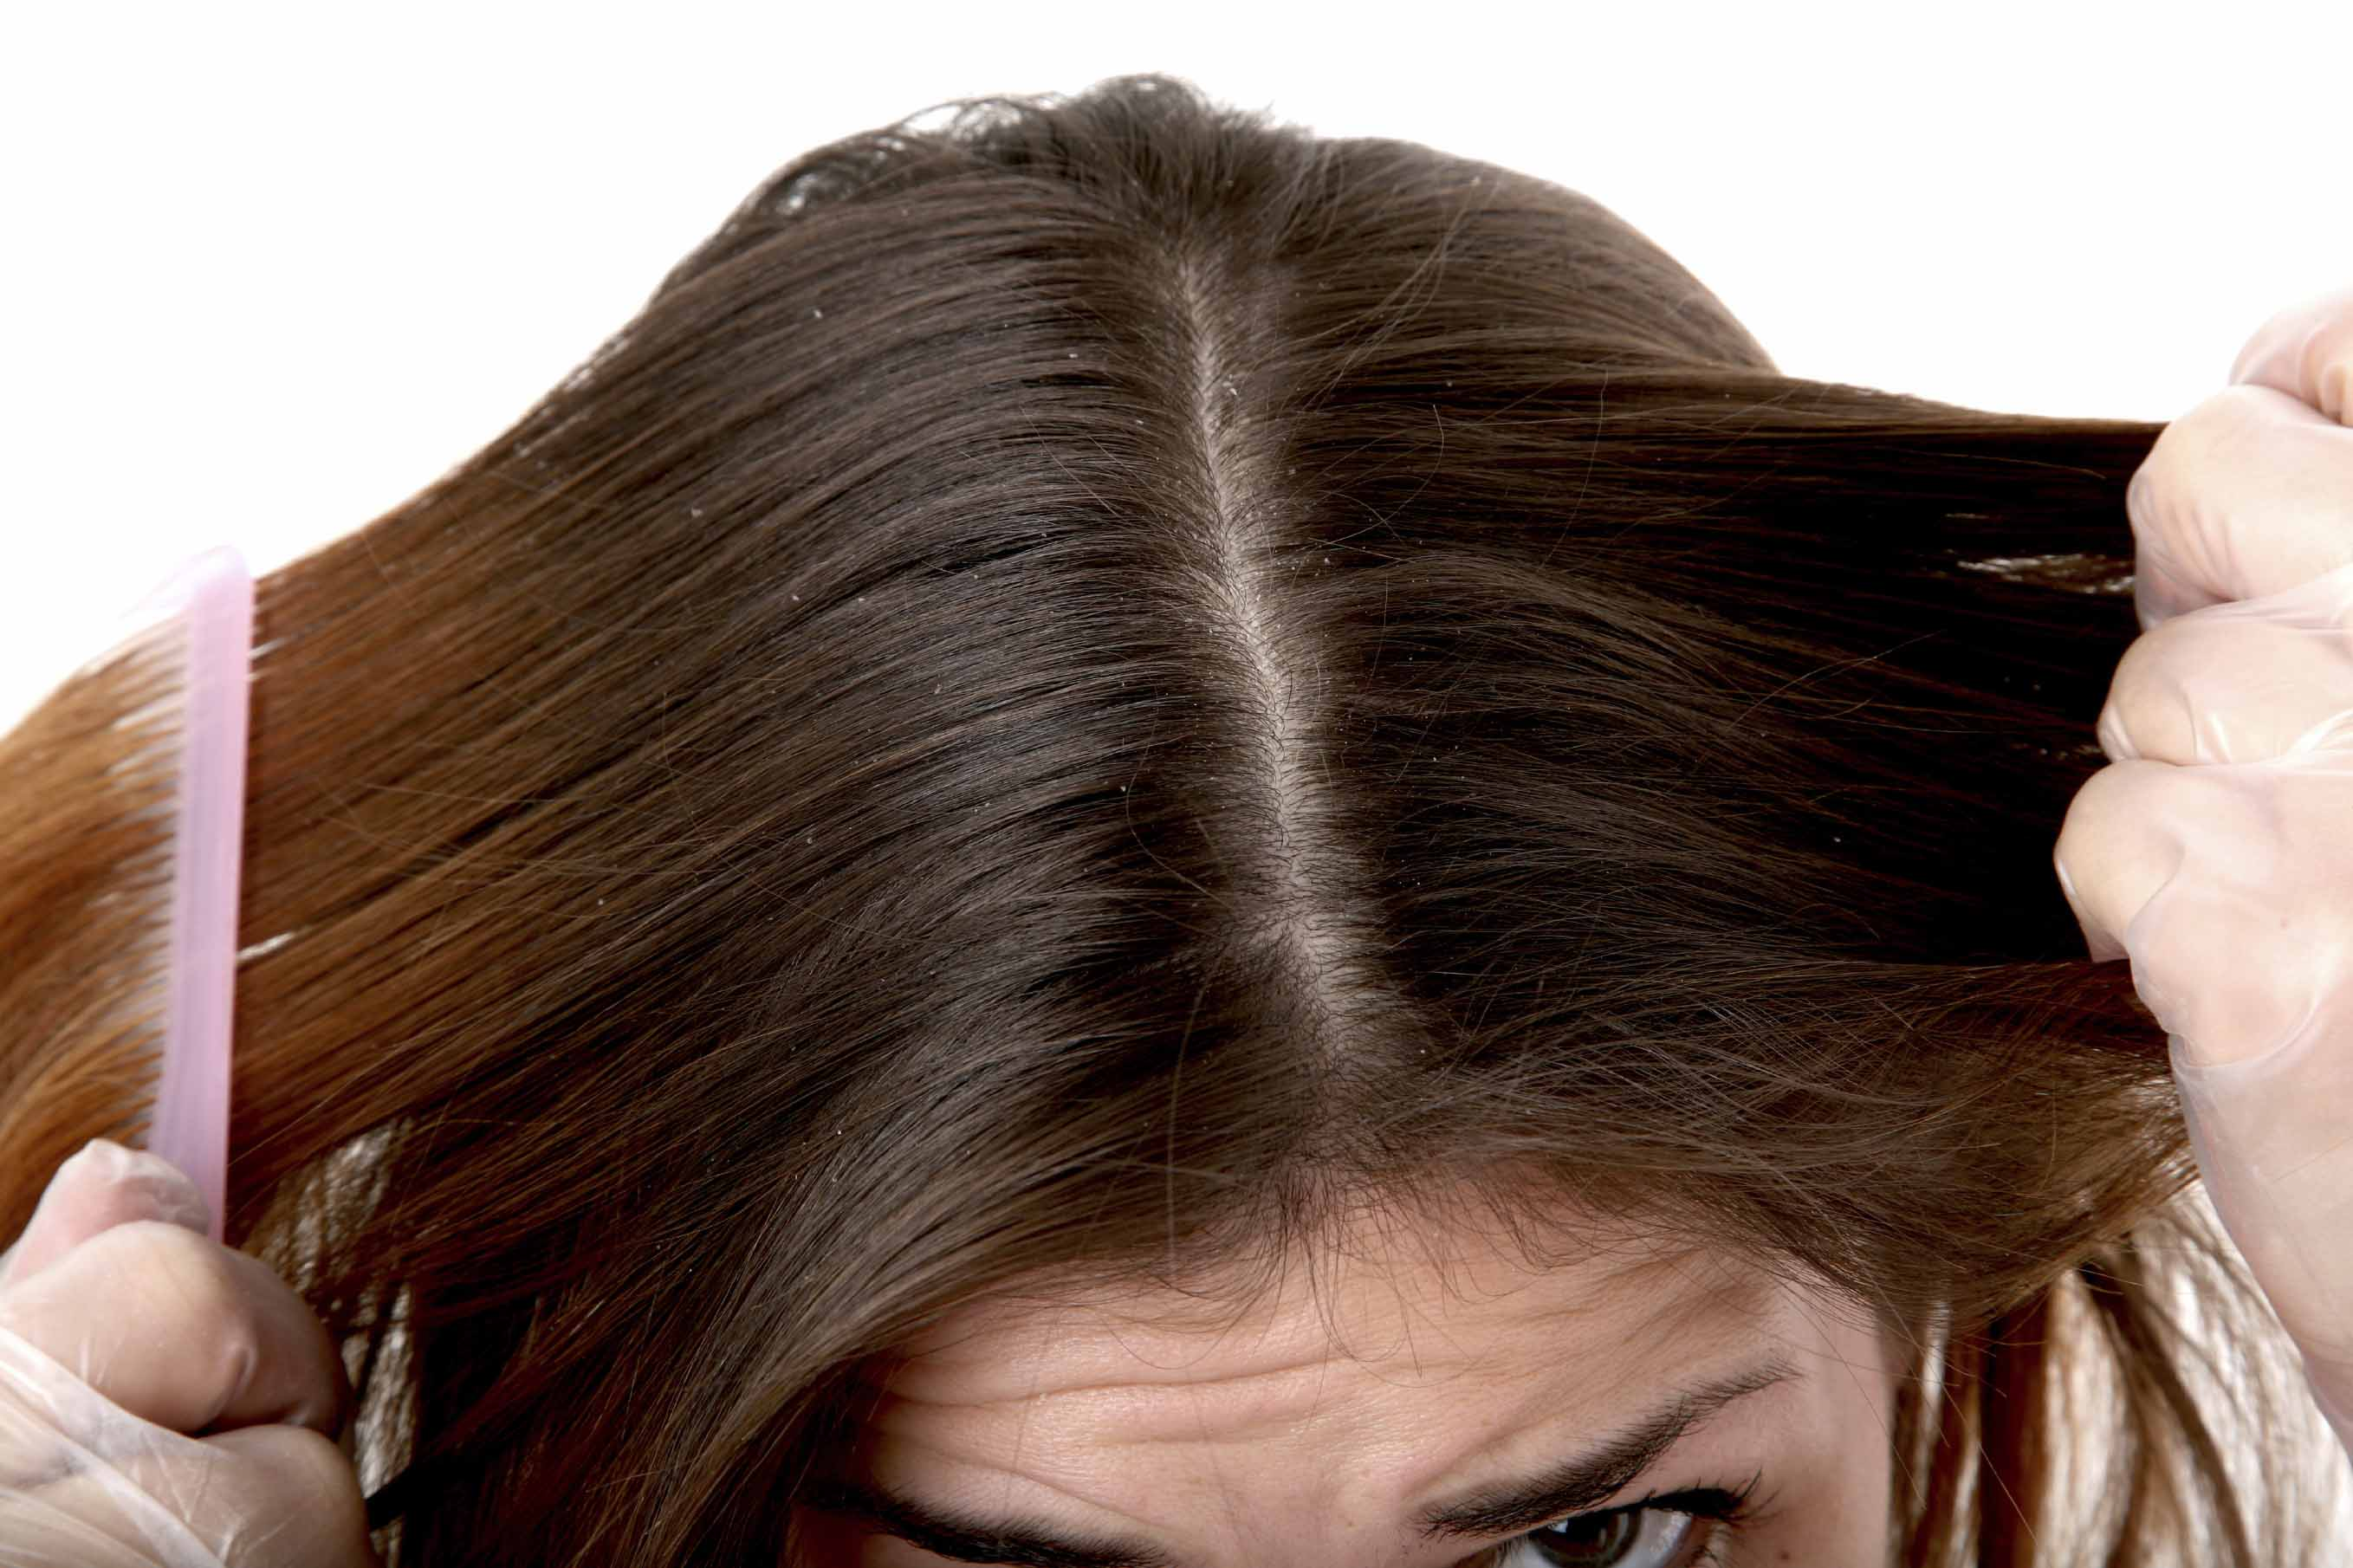 women combing her brown hair with dandruff or dry scalp